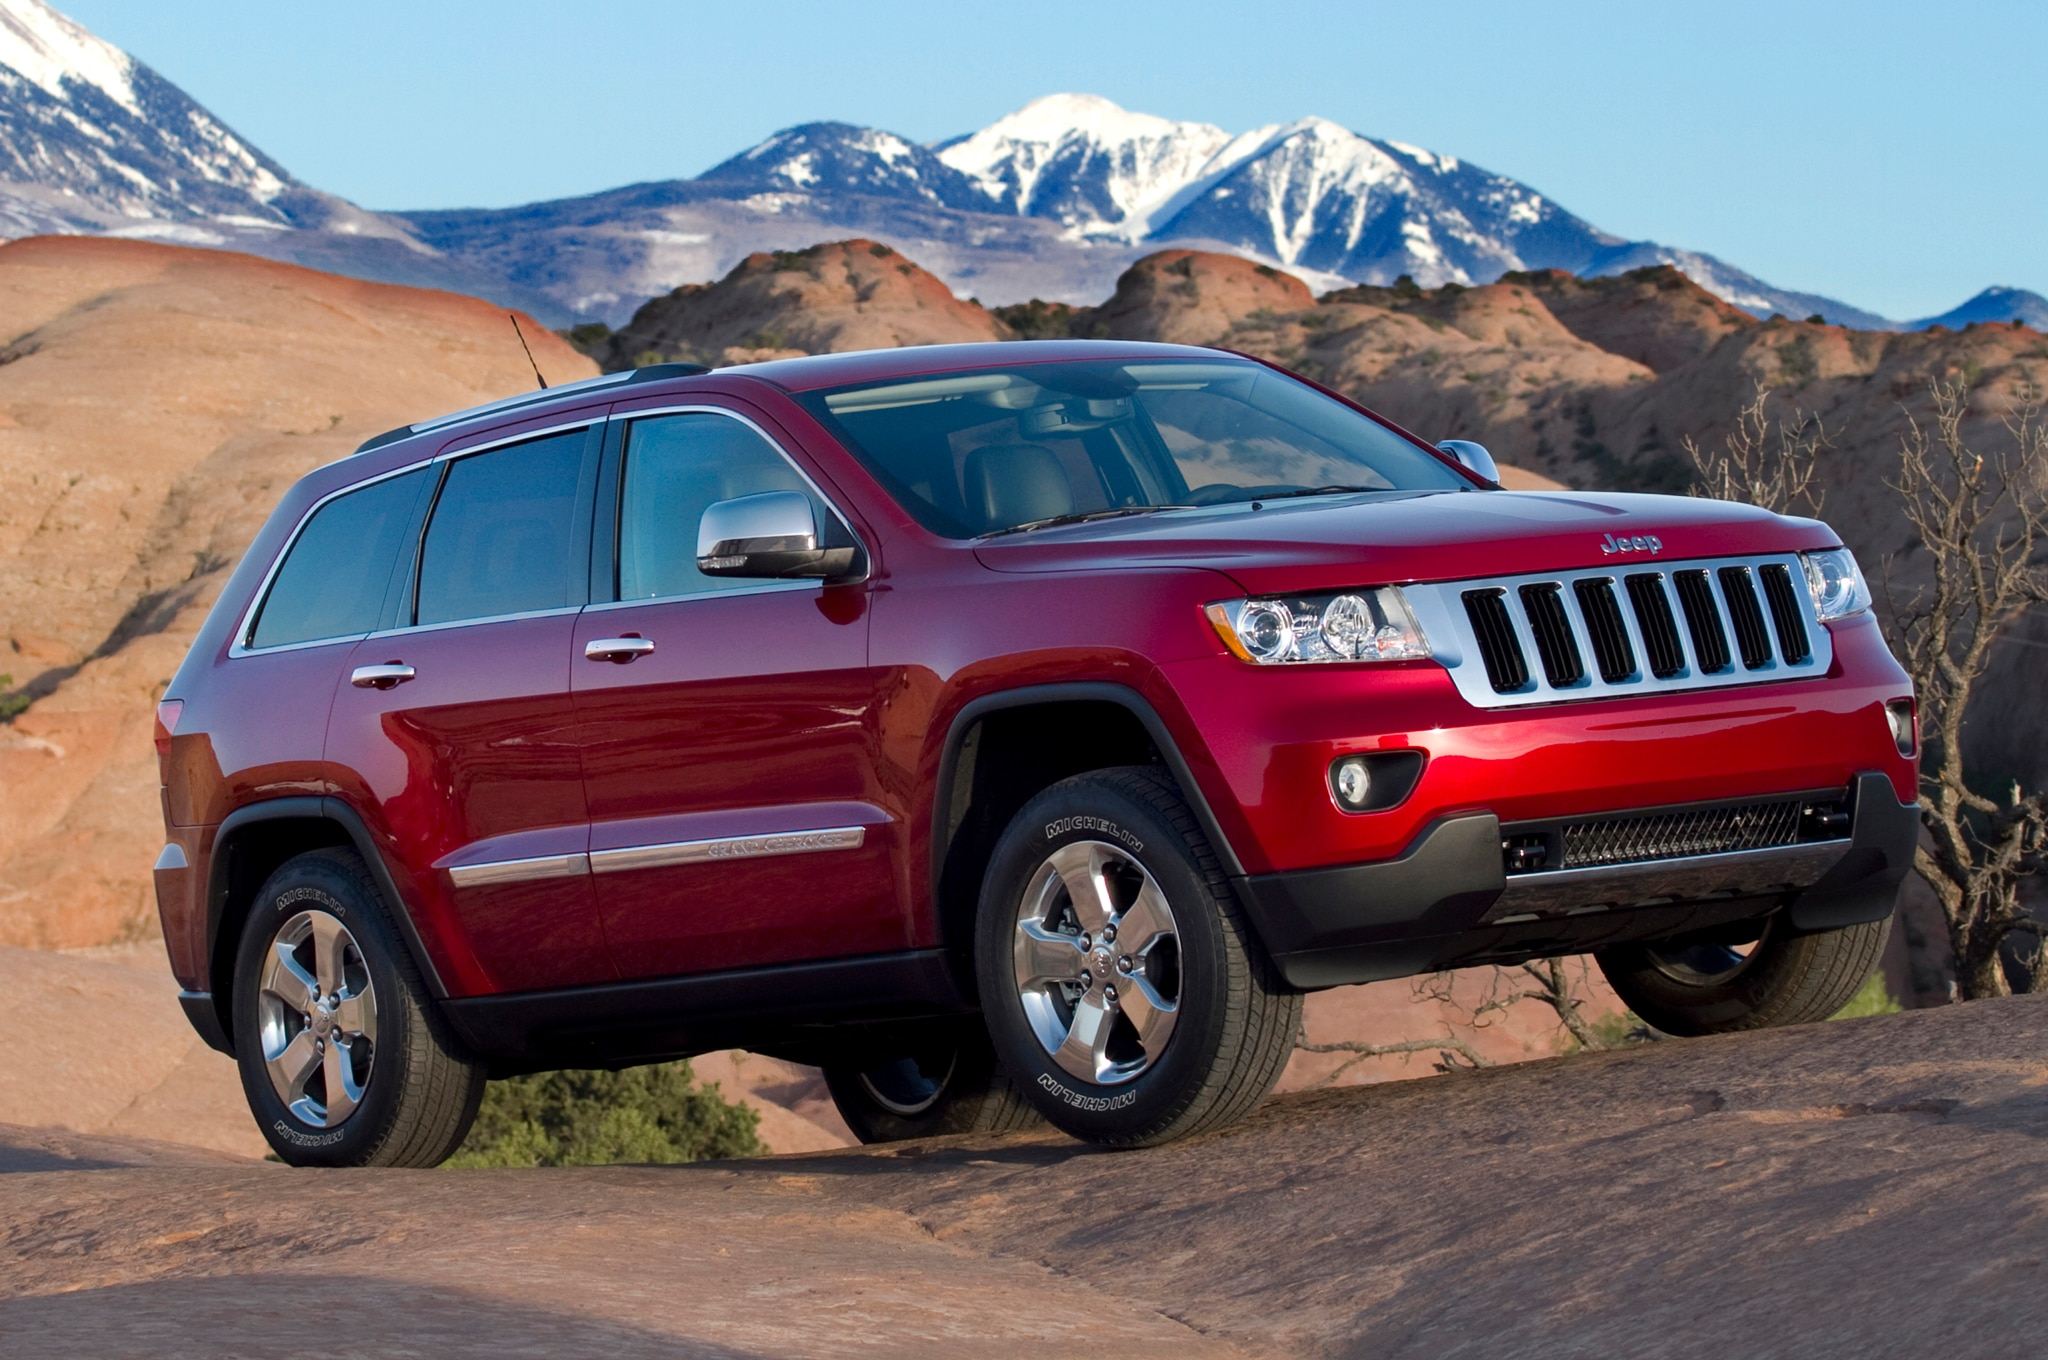 2011 jeep grand cherokee dodge durango recalled. Black Bedroom Furniture Sets. Home Design Ideas